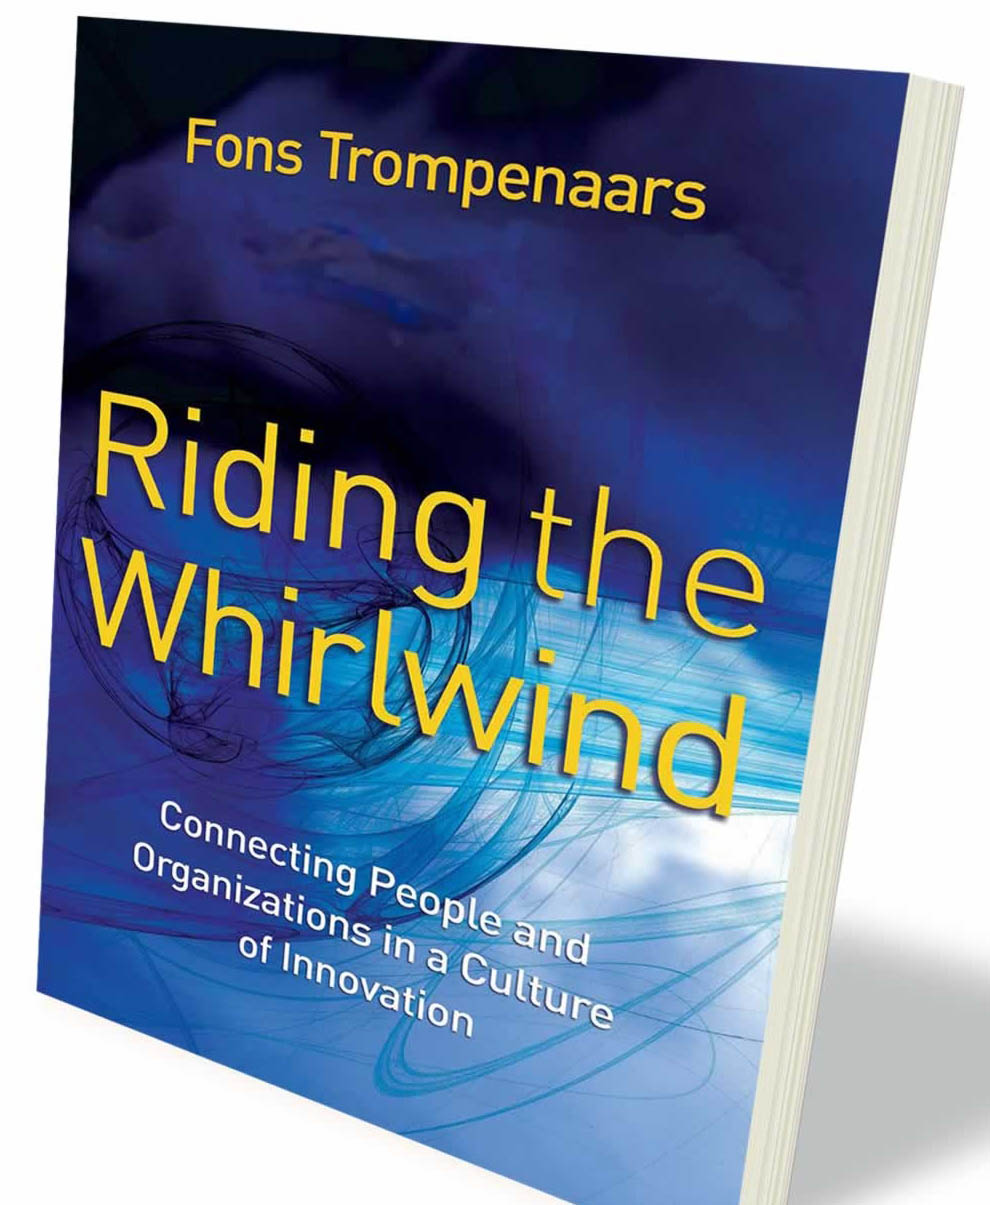 riding the waves of culture summary trompenaars Riding the waves of culture by trompenaars 276 pages riding the waves of culture by trompenaars uploaded by koozi ch download with google download with facebook or download with email riding the waves of culture by trompenaars download riding the waves of culture by trompenaars.